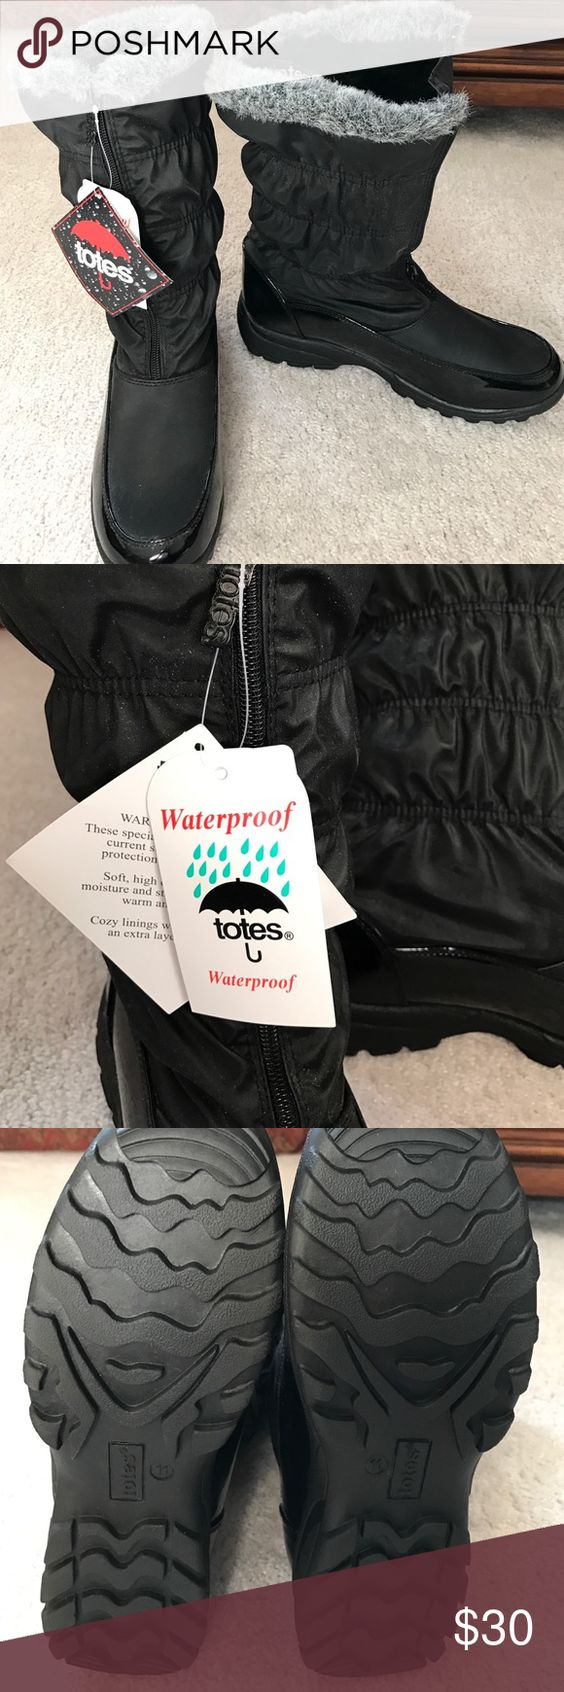 Waterproof winter boots by Totes Never worn. Made warm for winter. Totes Shoes Winter & Rain Boots